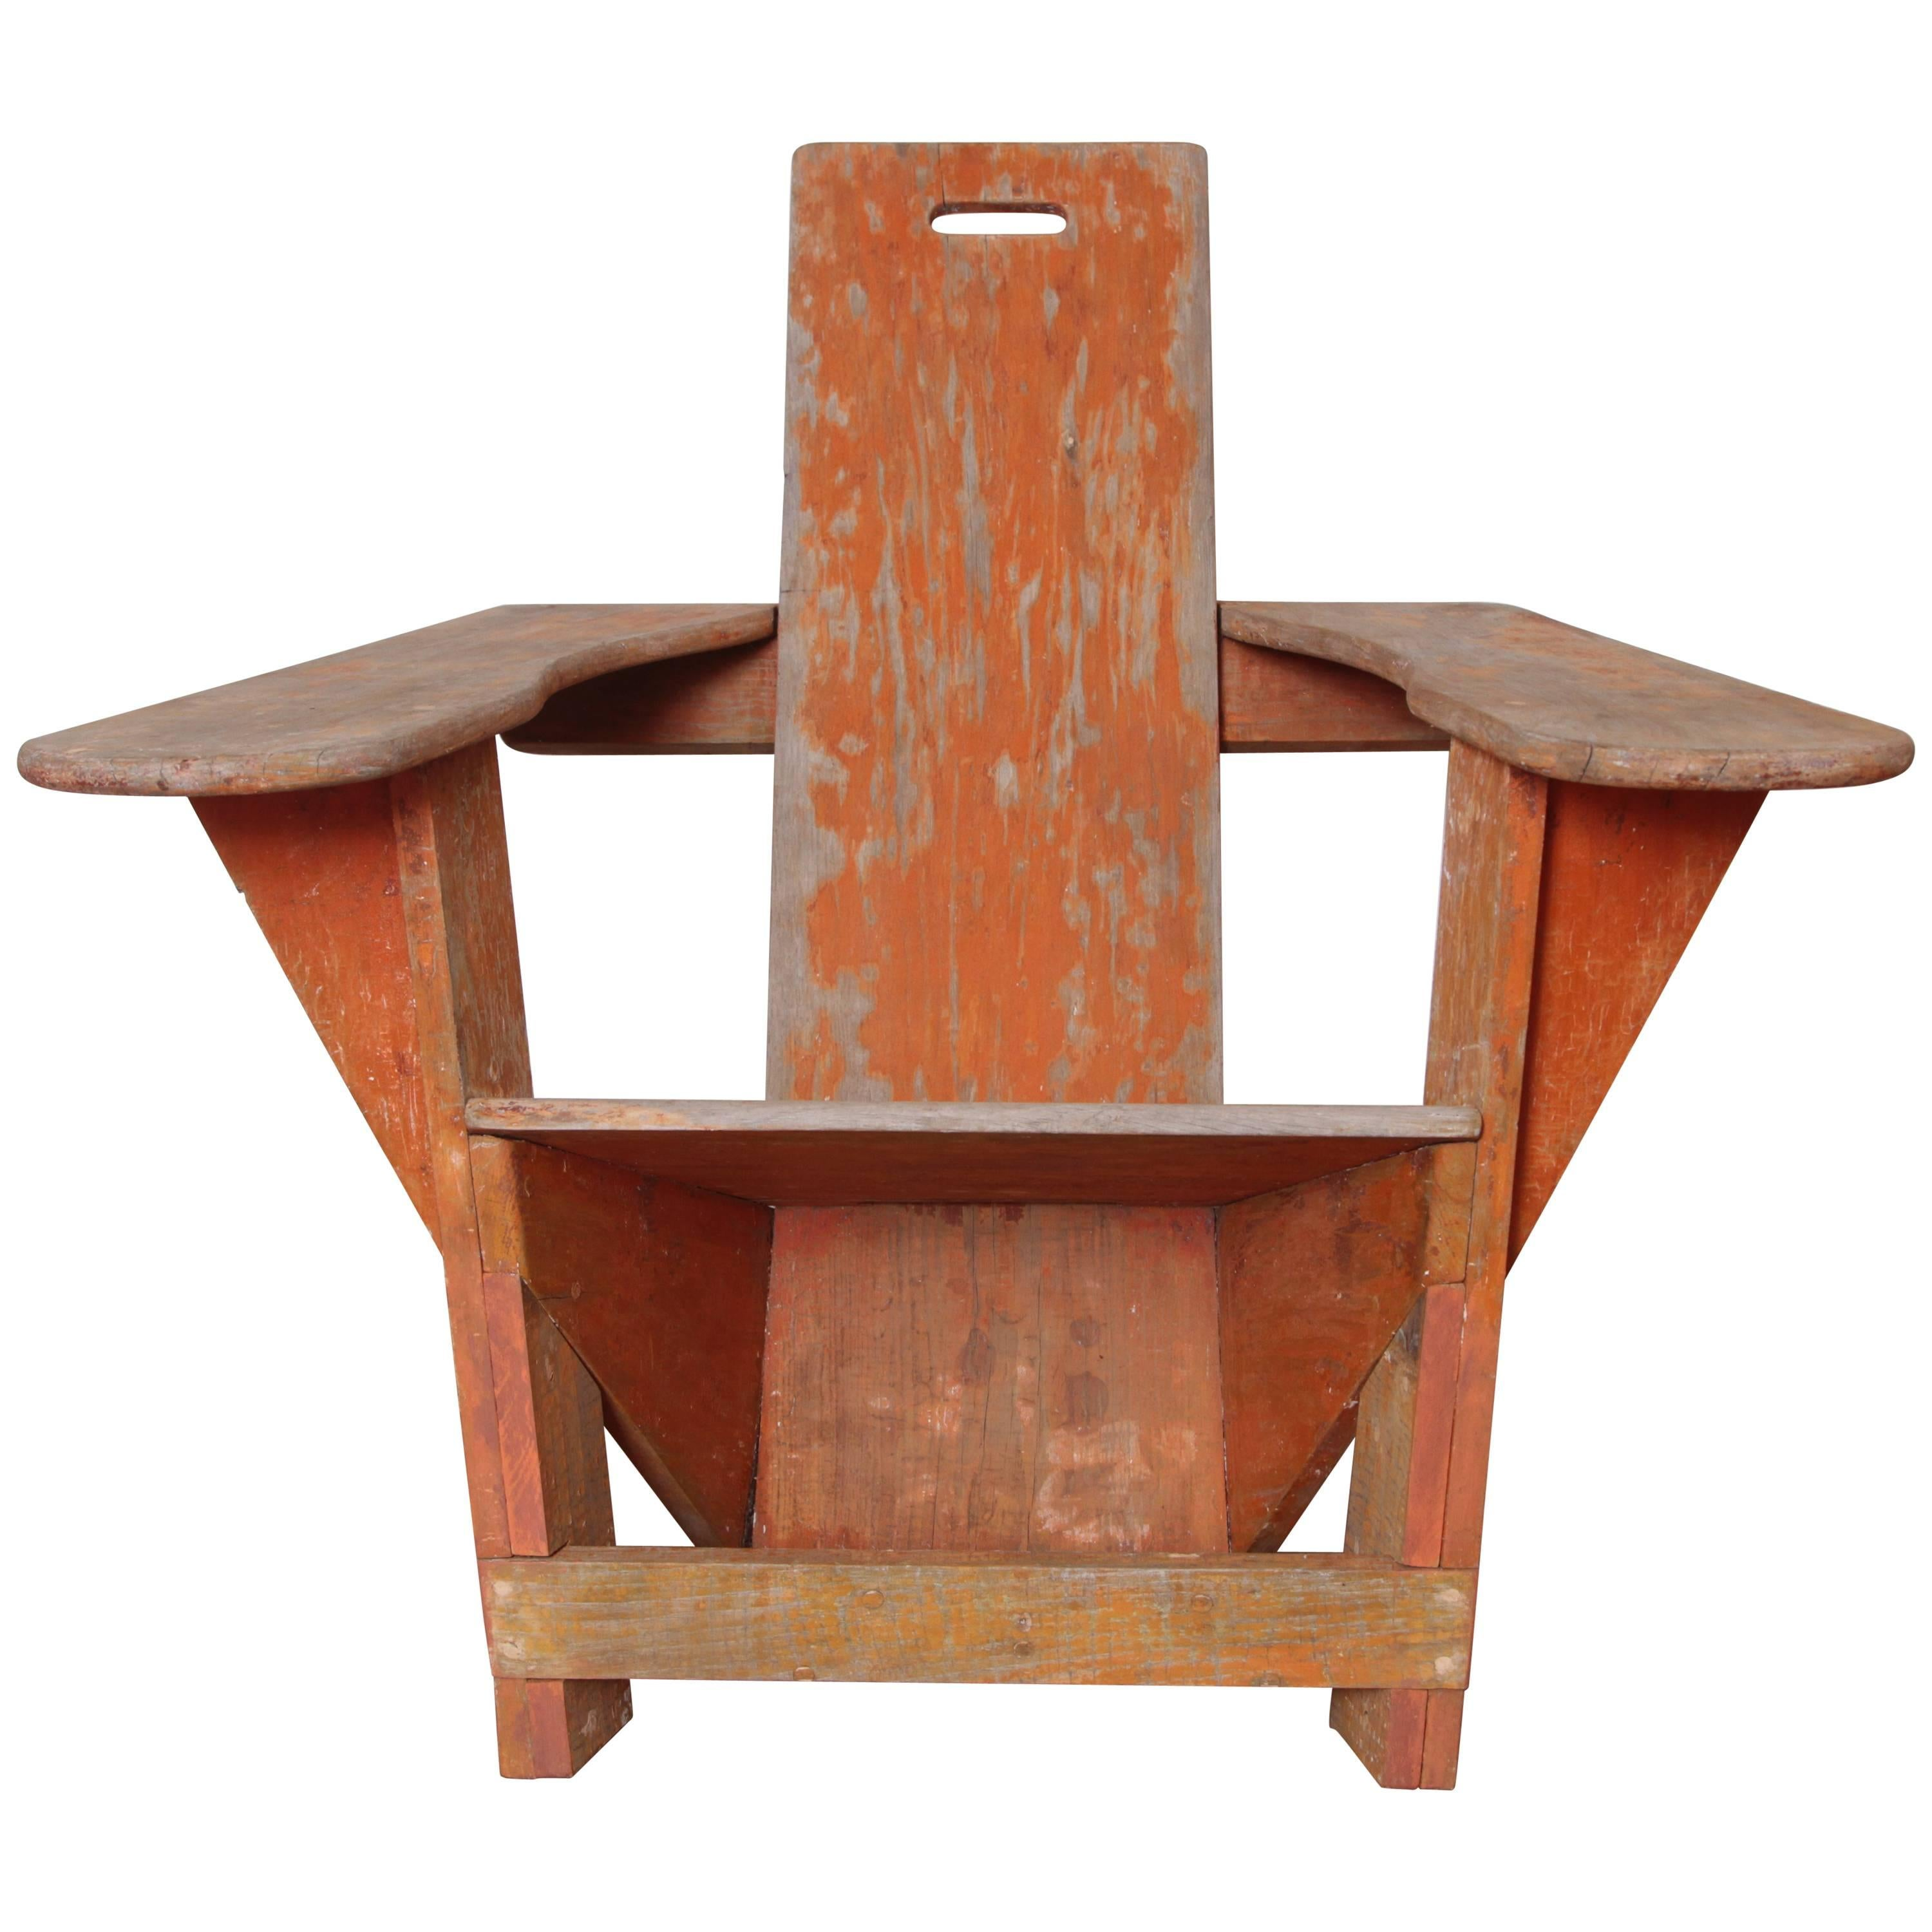 Beau Constructivist American Westport Adirondack Lounge Chair, Early Cubist Form  For Sale